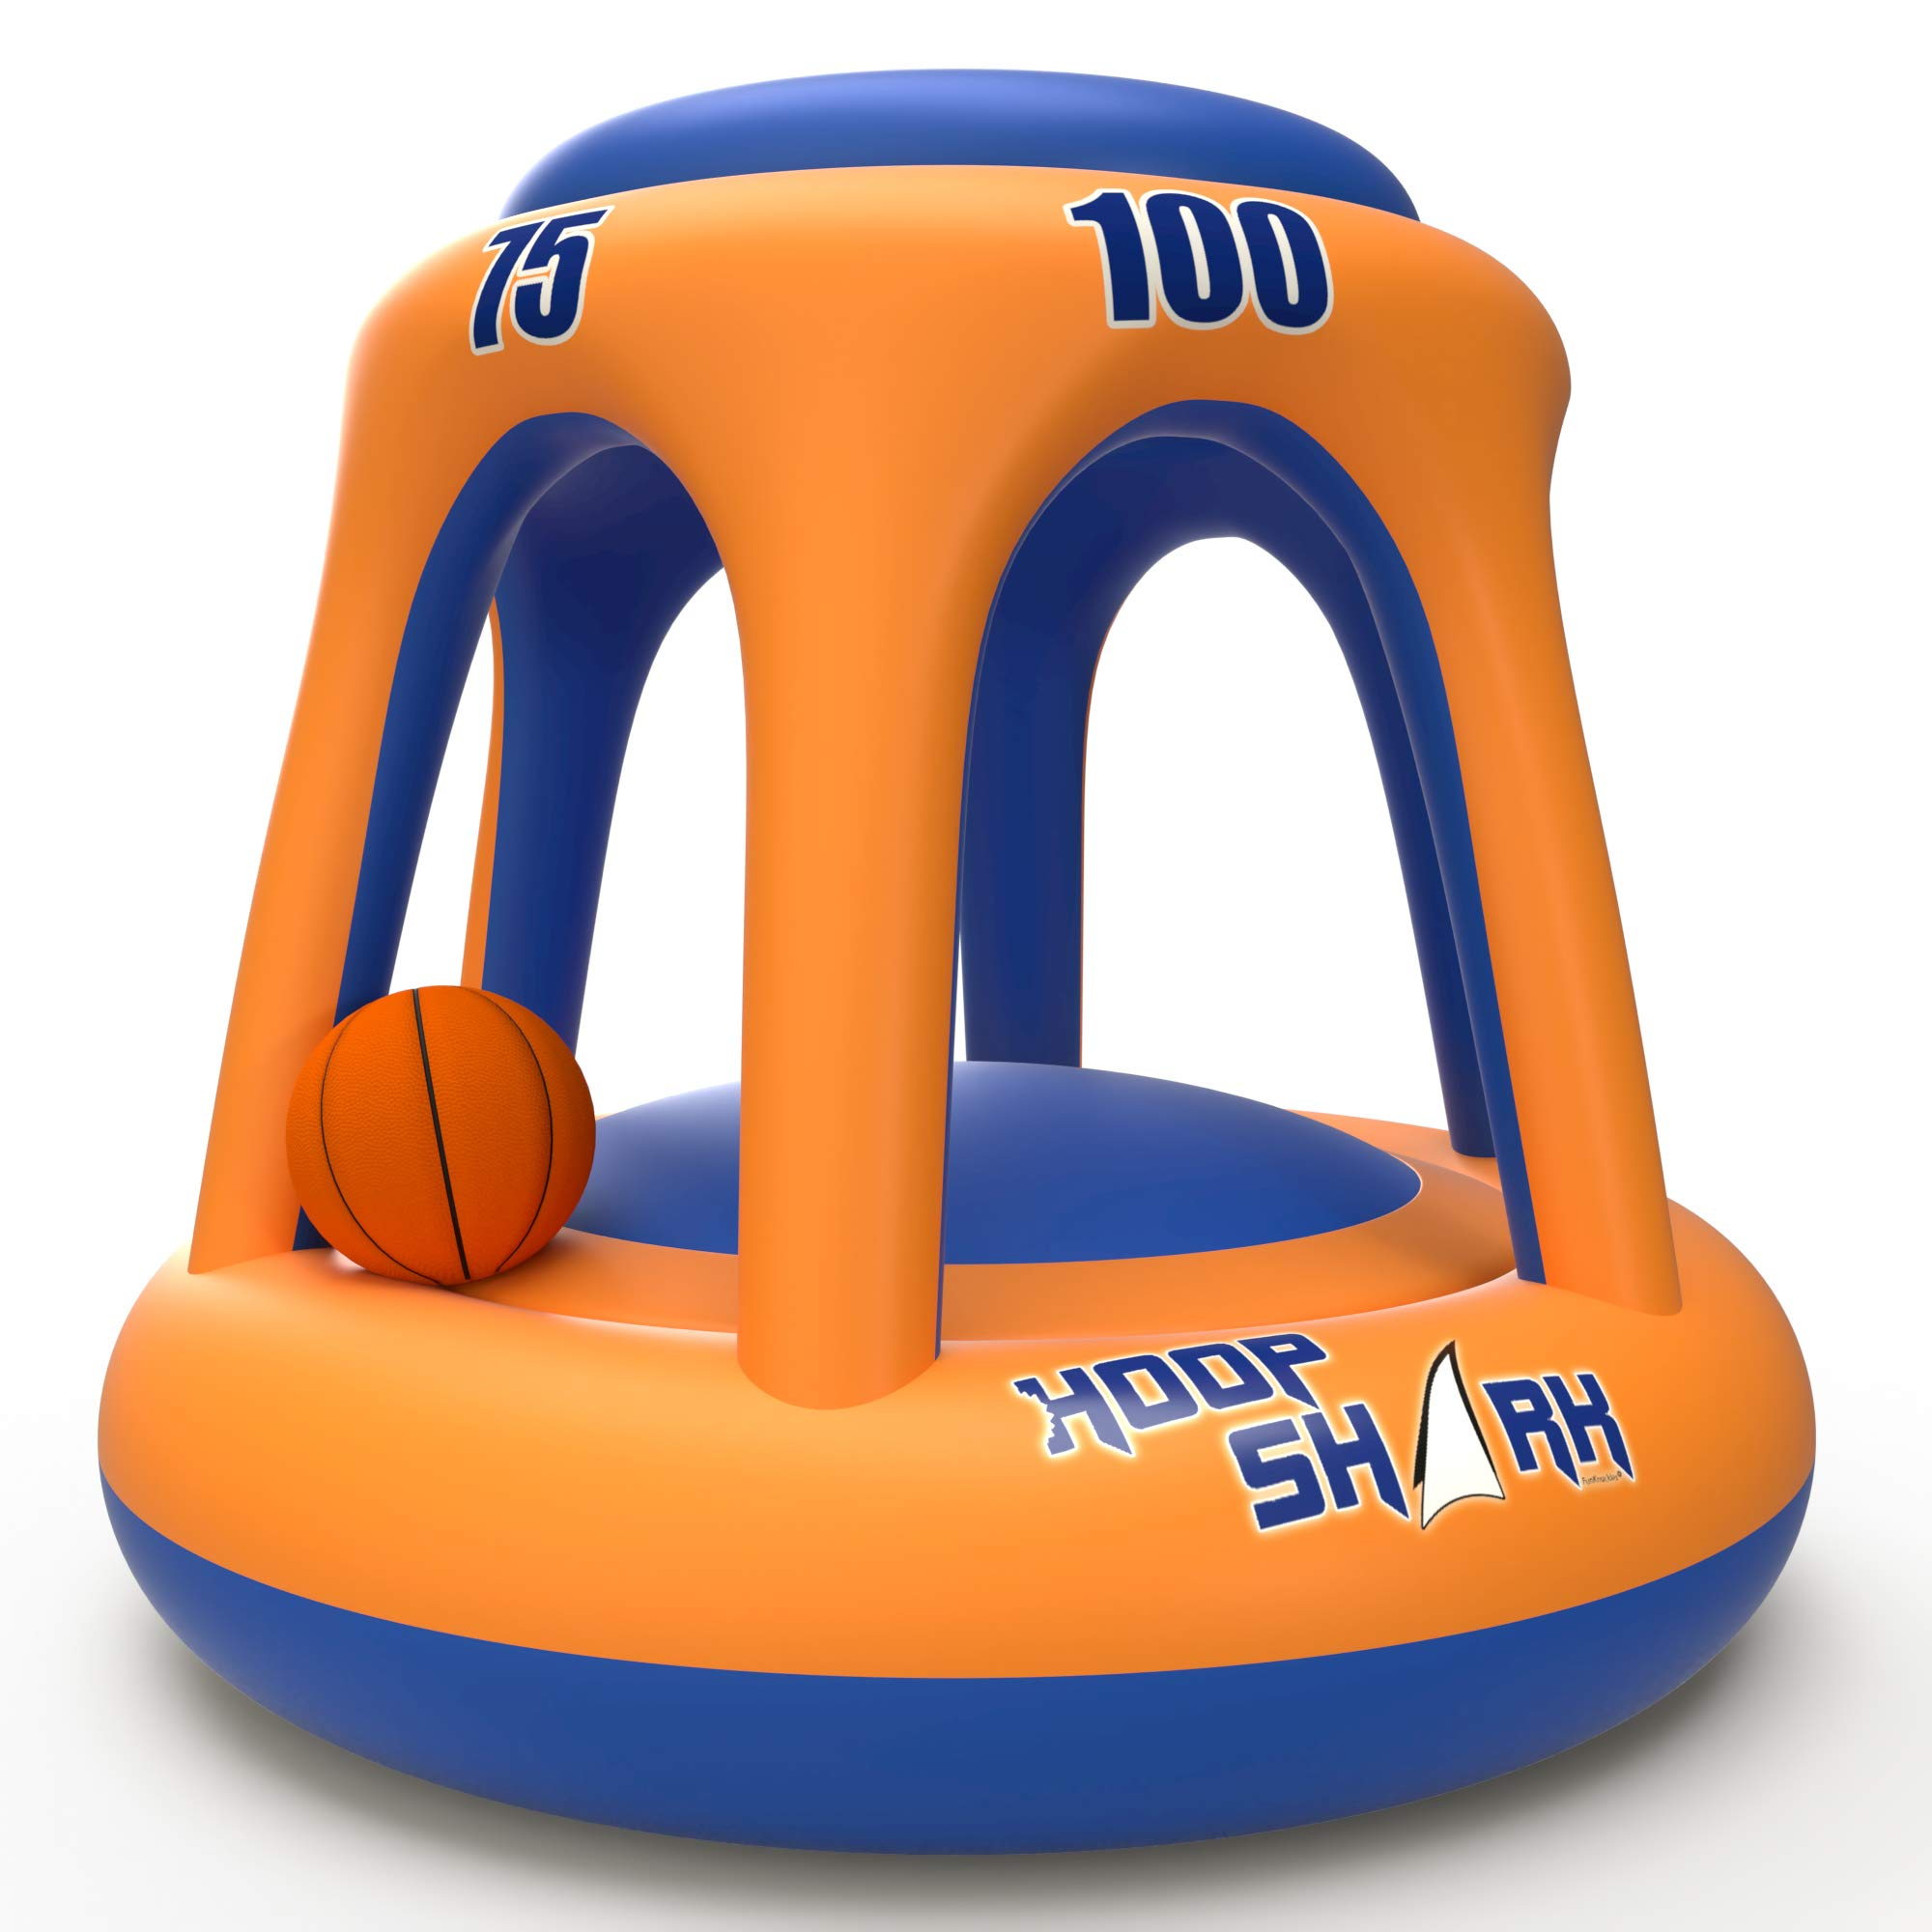 Swimming Pool Basketball Hoop Set by Hoop Shark - Orange/Blue 2020 Edition - Inflatable Hoop with Ball Included - Perfect for Competitive Water Play and Trick Shots - Ultimate Summer Toy by Hoop Shark